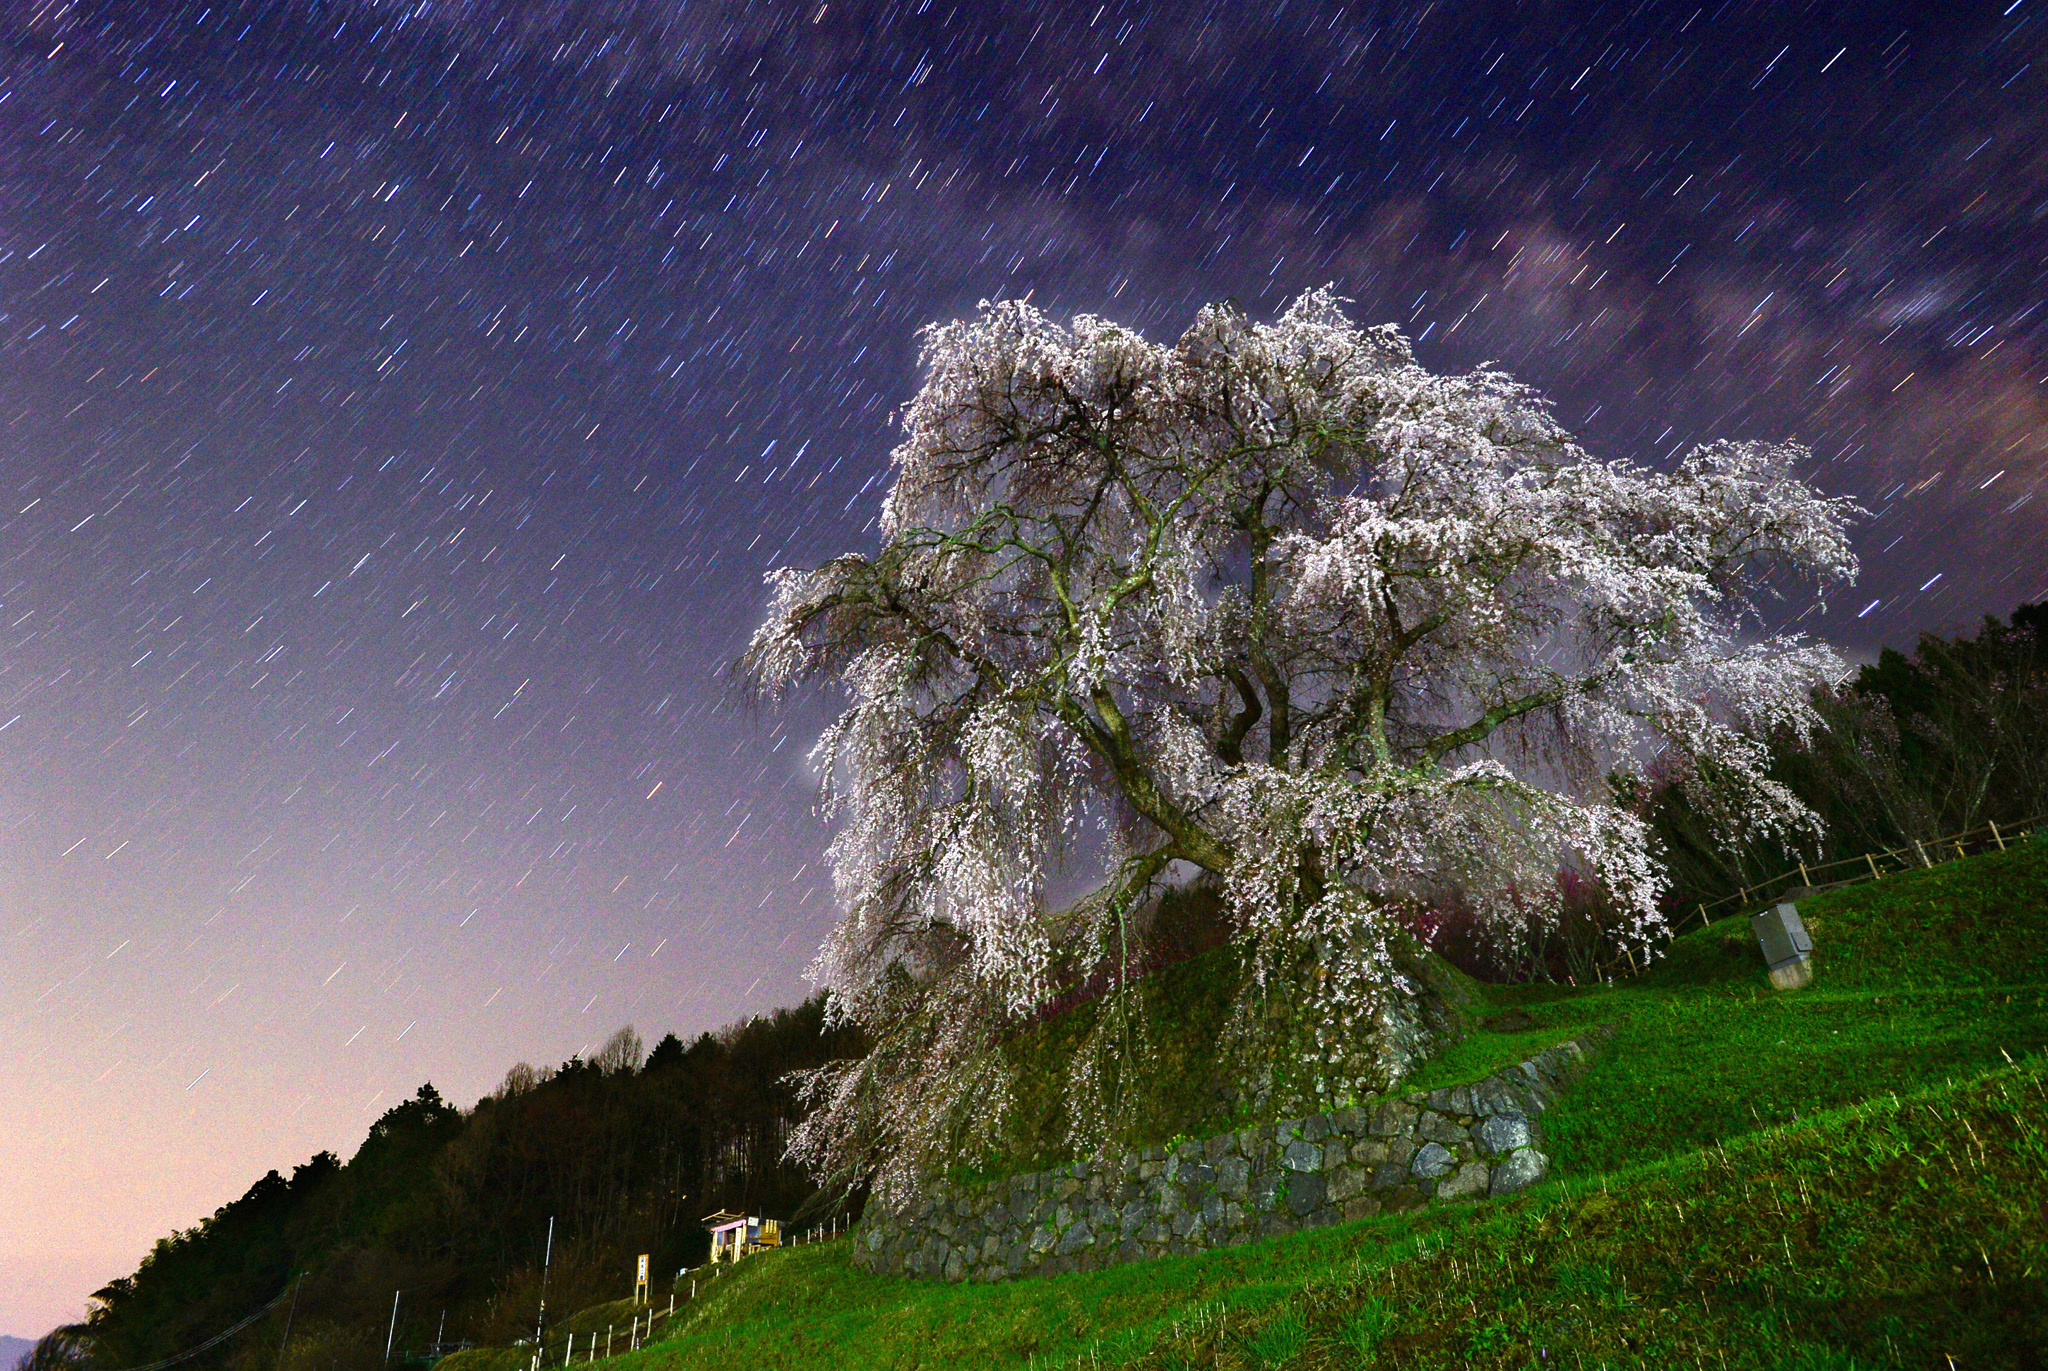 People Enjoy Cherry Blossoms In Japan...UDA, JAPAN - APRIL 08:  (CHINA OUT, SOUTH KOREA OUT) In this long exposure image, the 'Matabe-e zakura', cherry blossom which is believed to be more than 300 years old, is in full bloom on Aprul 8, 2014 in Uda, Nara, Japan.  (Photo by The Asahi Shimbun via Getty Images)